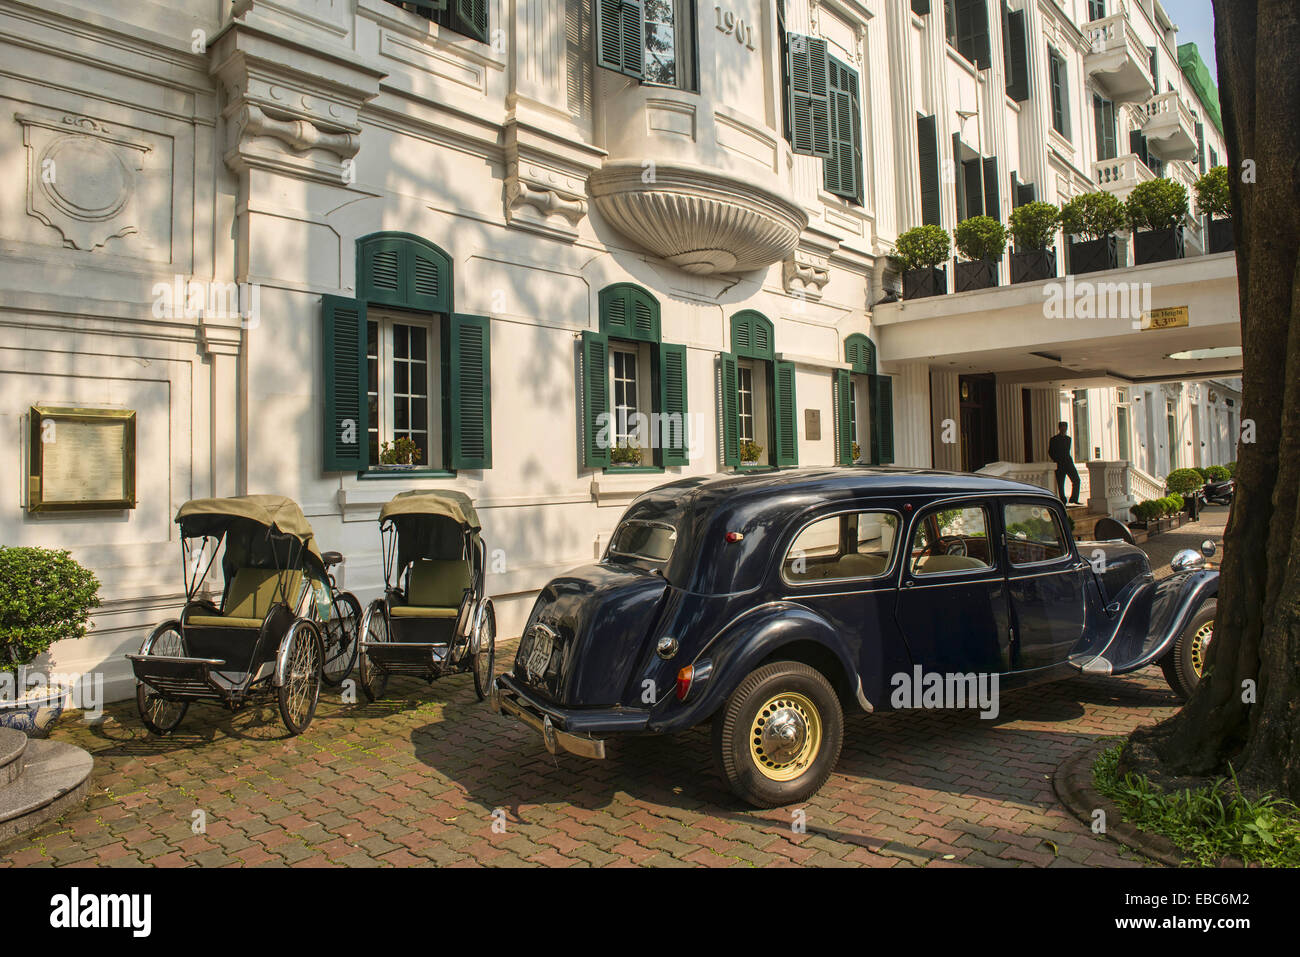 cyclos and vintage car in front of the historic Metropole Hotel in Hanoi Vietnam. - Stock Image